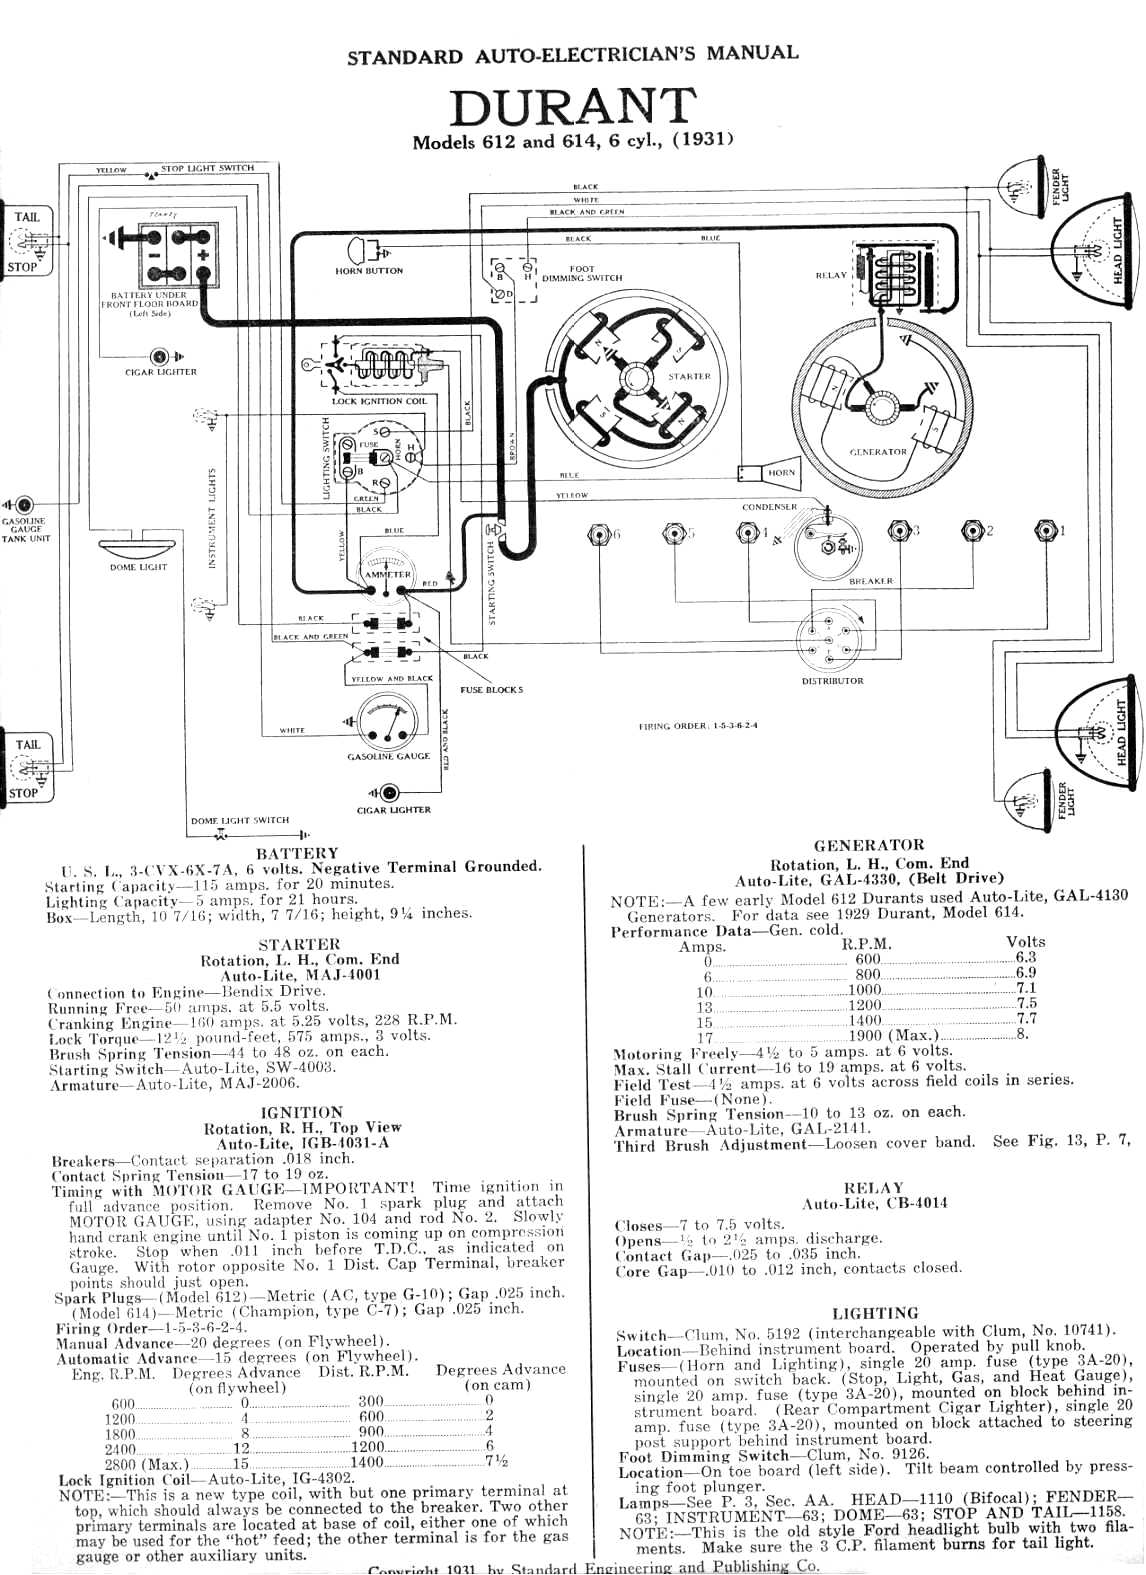 Durant Wiring Diagram Archive Of Automotive And Cigarette Lighter All About Diagrams Another Blog U2022 Rh Emmascott Co